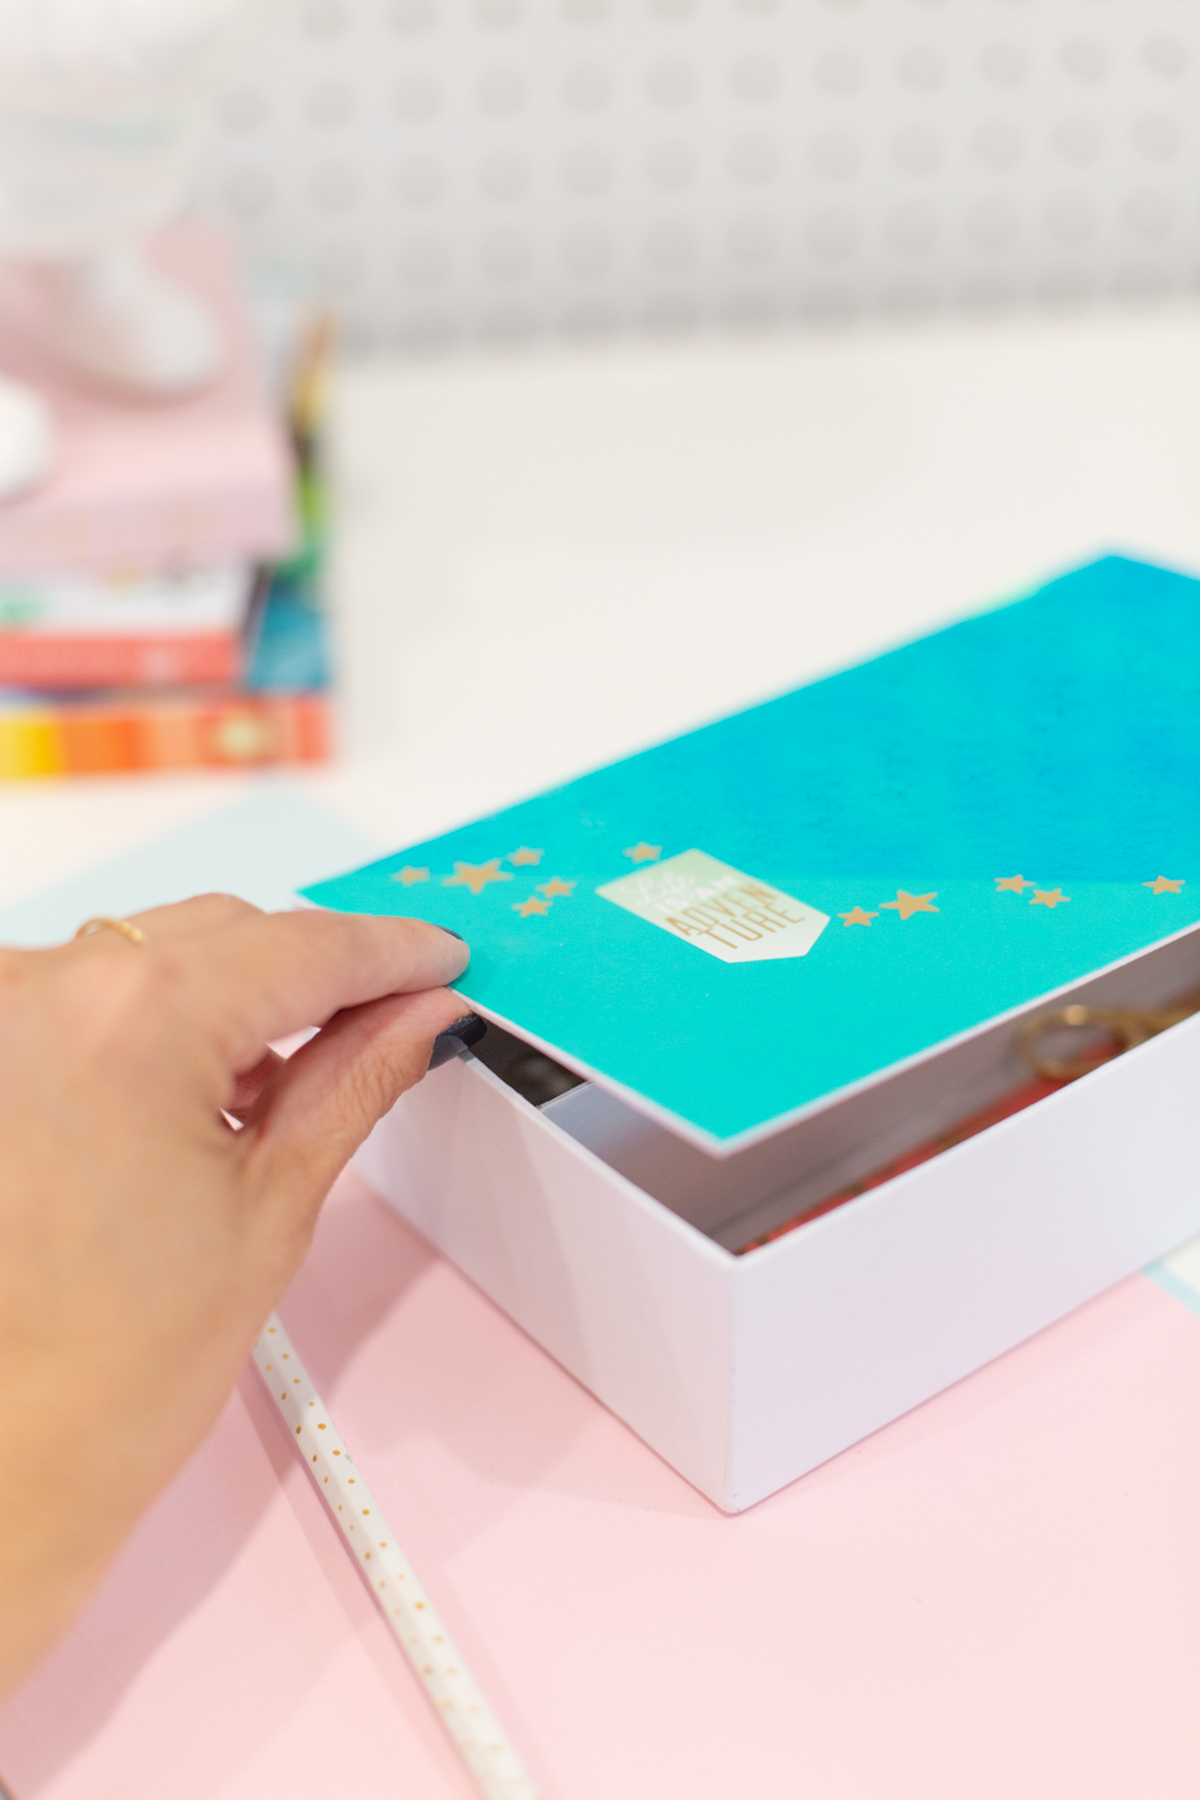 Hand opening decorated pencil box